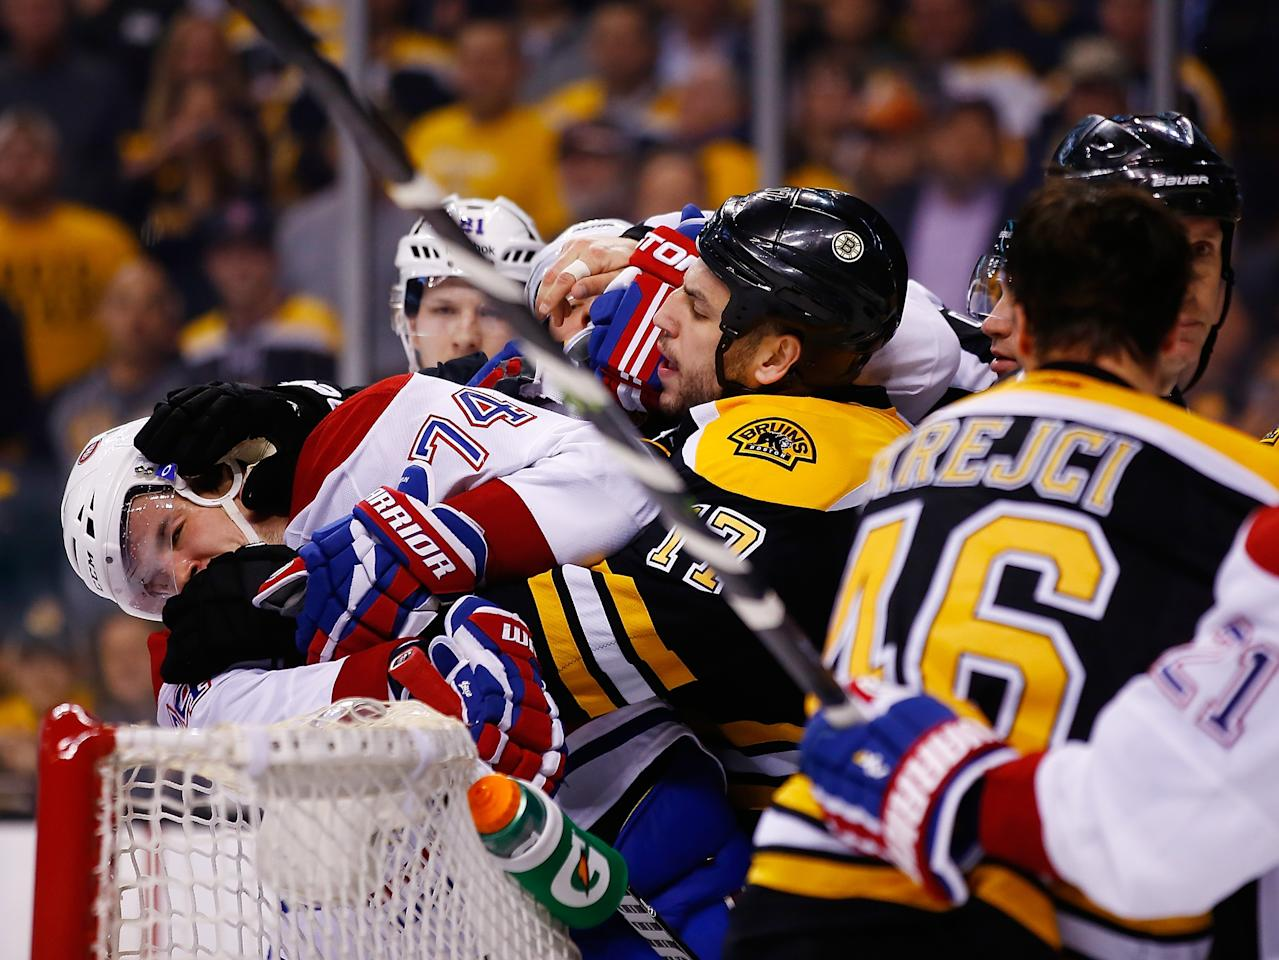 BOSTON, MA - MAY 03: Milan Lucic #17 of the Boston Bruins shoves Alexei Emelin #74 of the Montreal Canadiens into the goal in the third period in Game Two of the Second Round of the 2014 NHL Stanley Cup Playoffs at TD Garden on May 3, 2014 in Boston, Massachusetts. (Photo by Jared Wickerham/Getty Images)